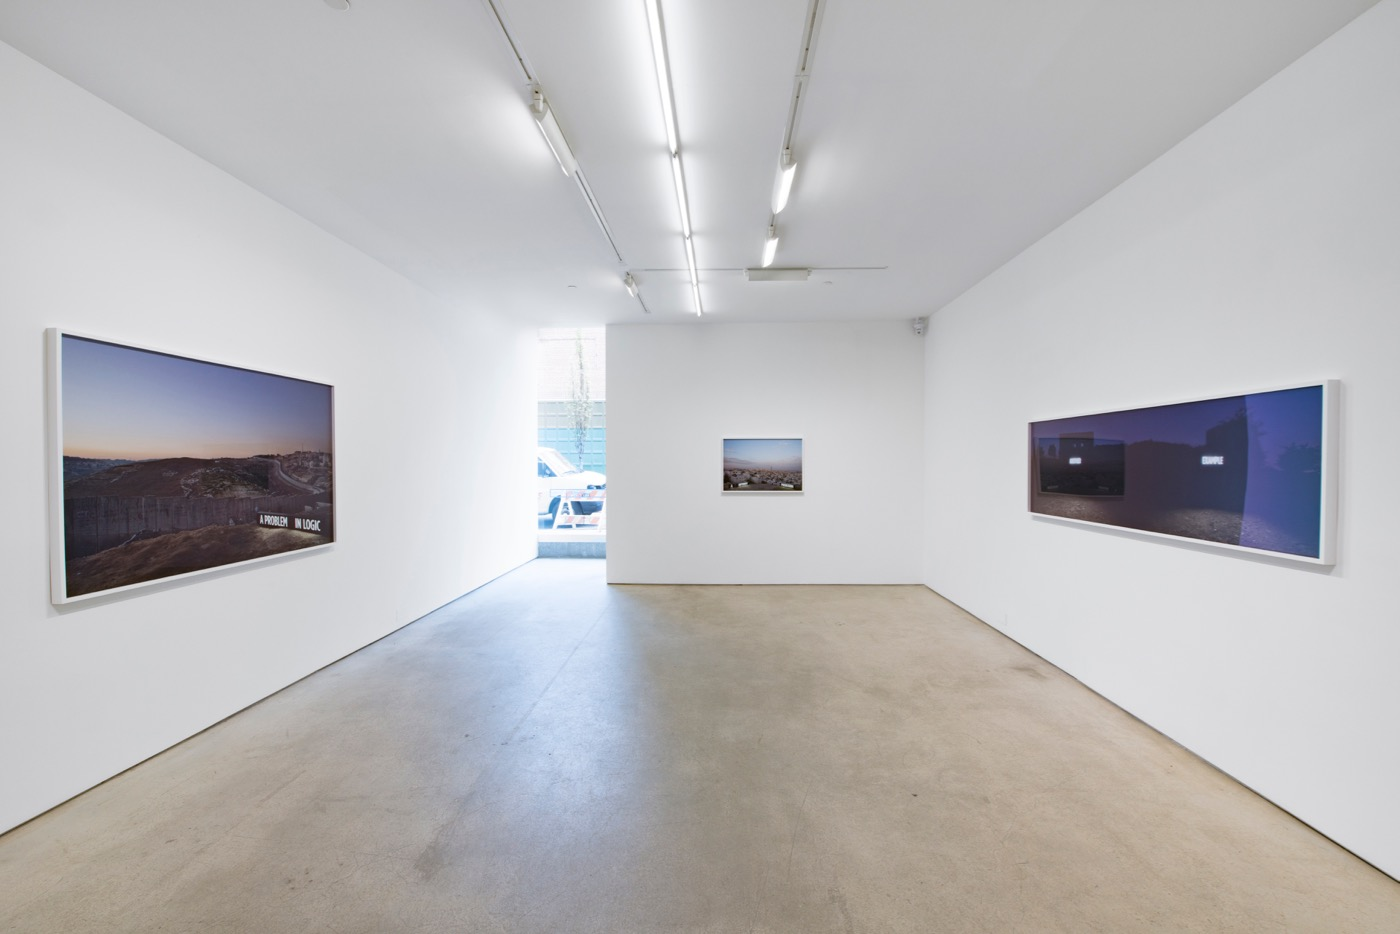 Shimon Attie, Facts on the Ground installation view (2016). Courtesy of the artist and Jack Shainman Gallery